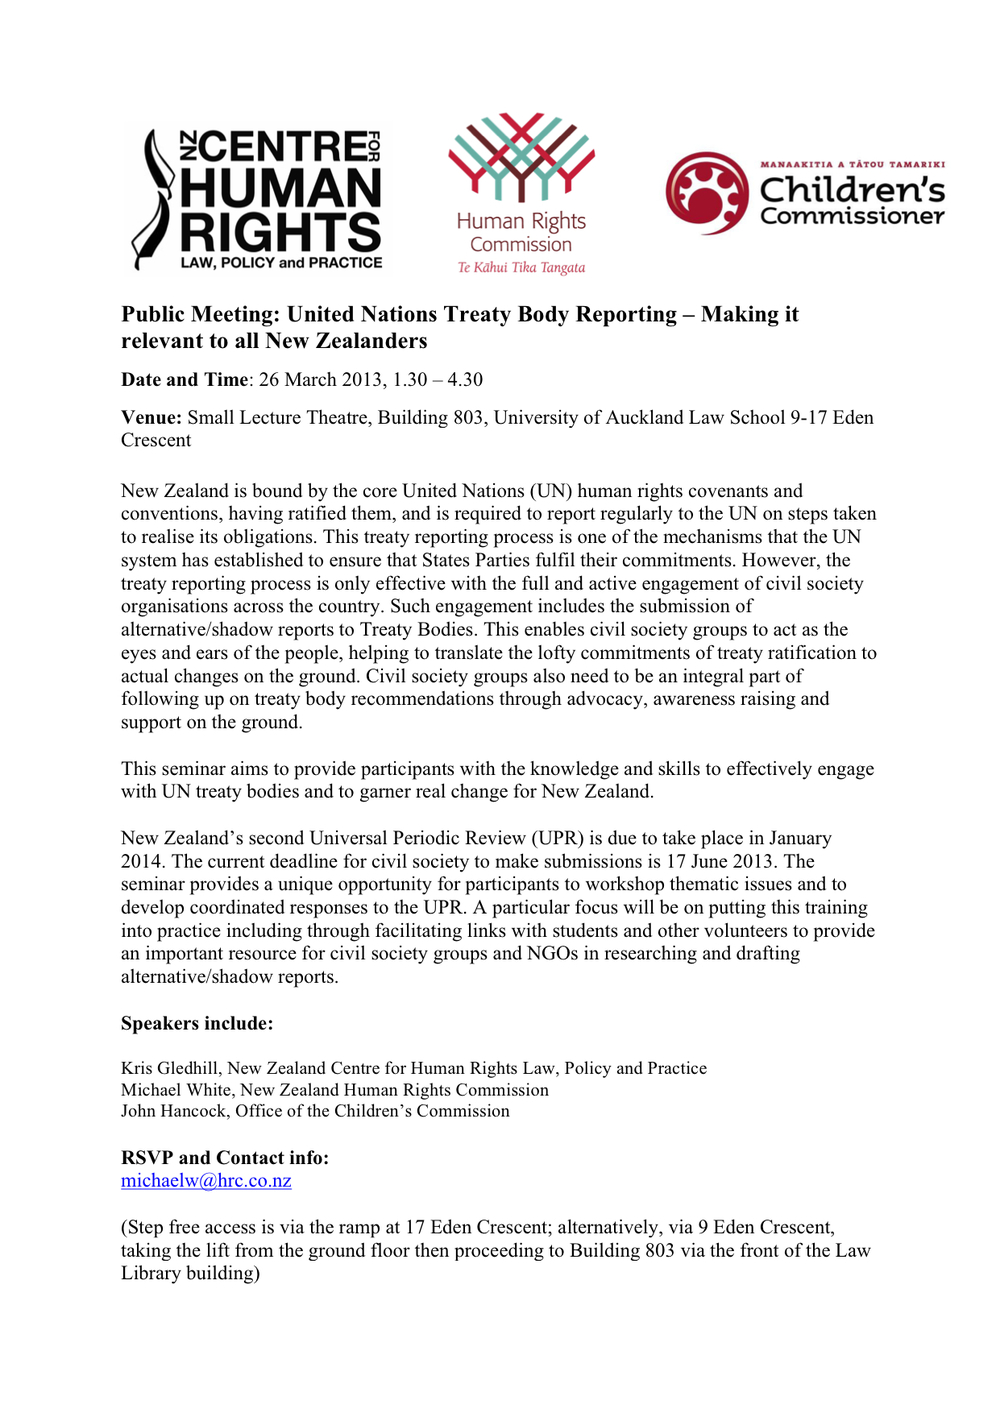 Public Meeting: United Nations Treaty Body Reporting – Making it relevant to all New Zealanders